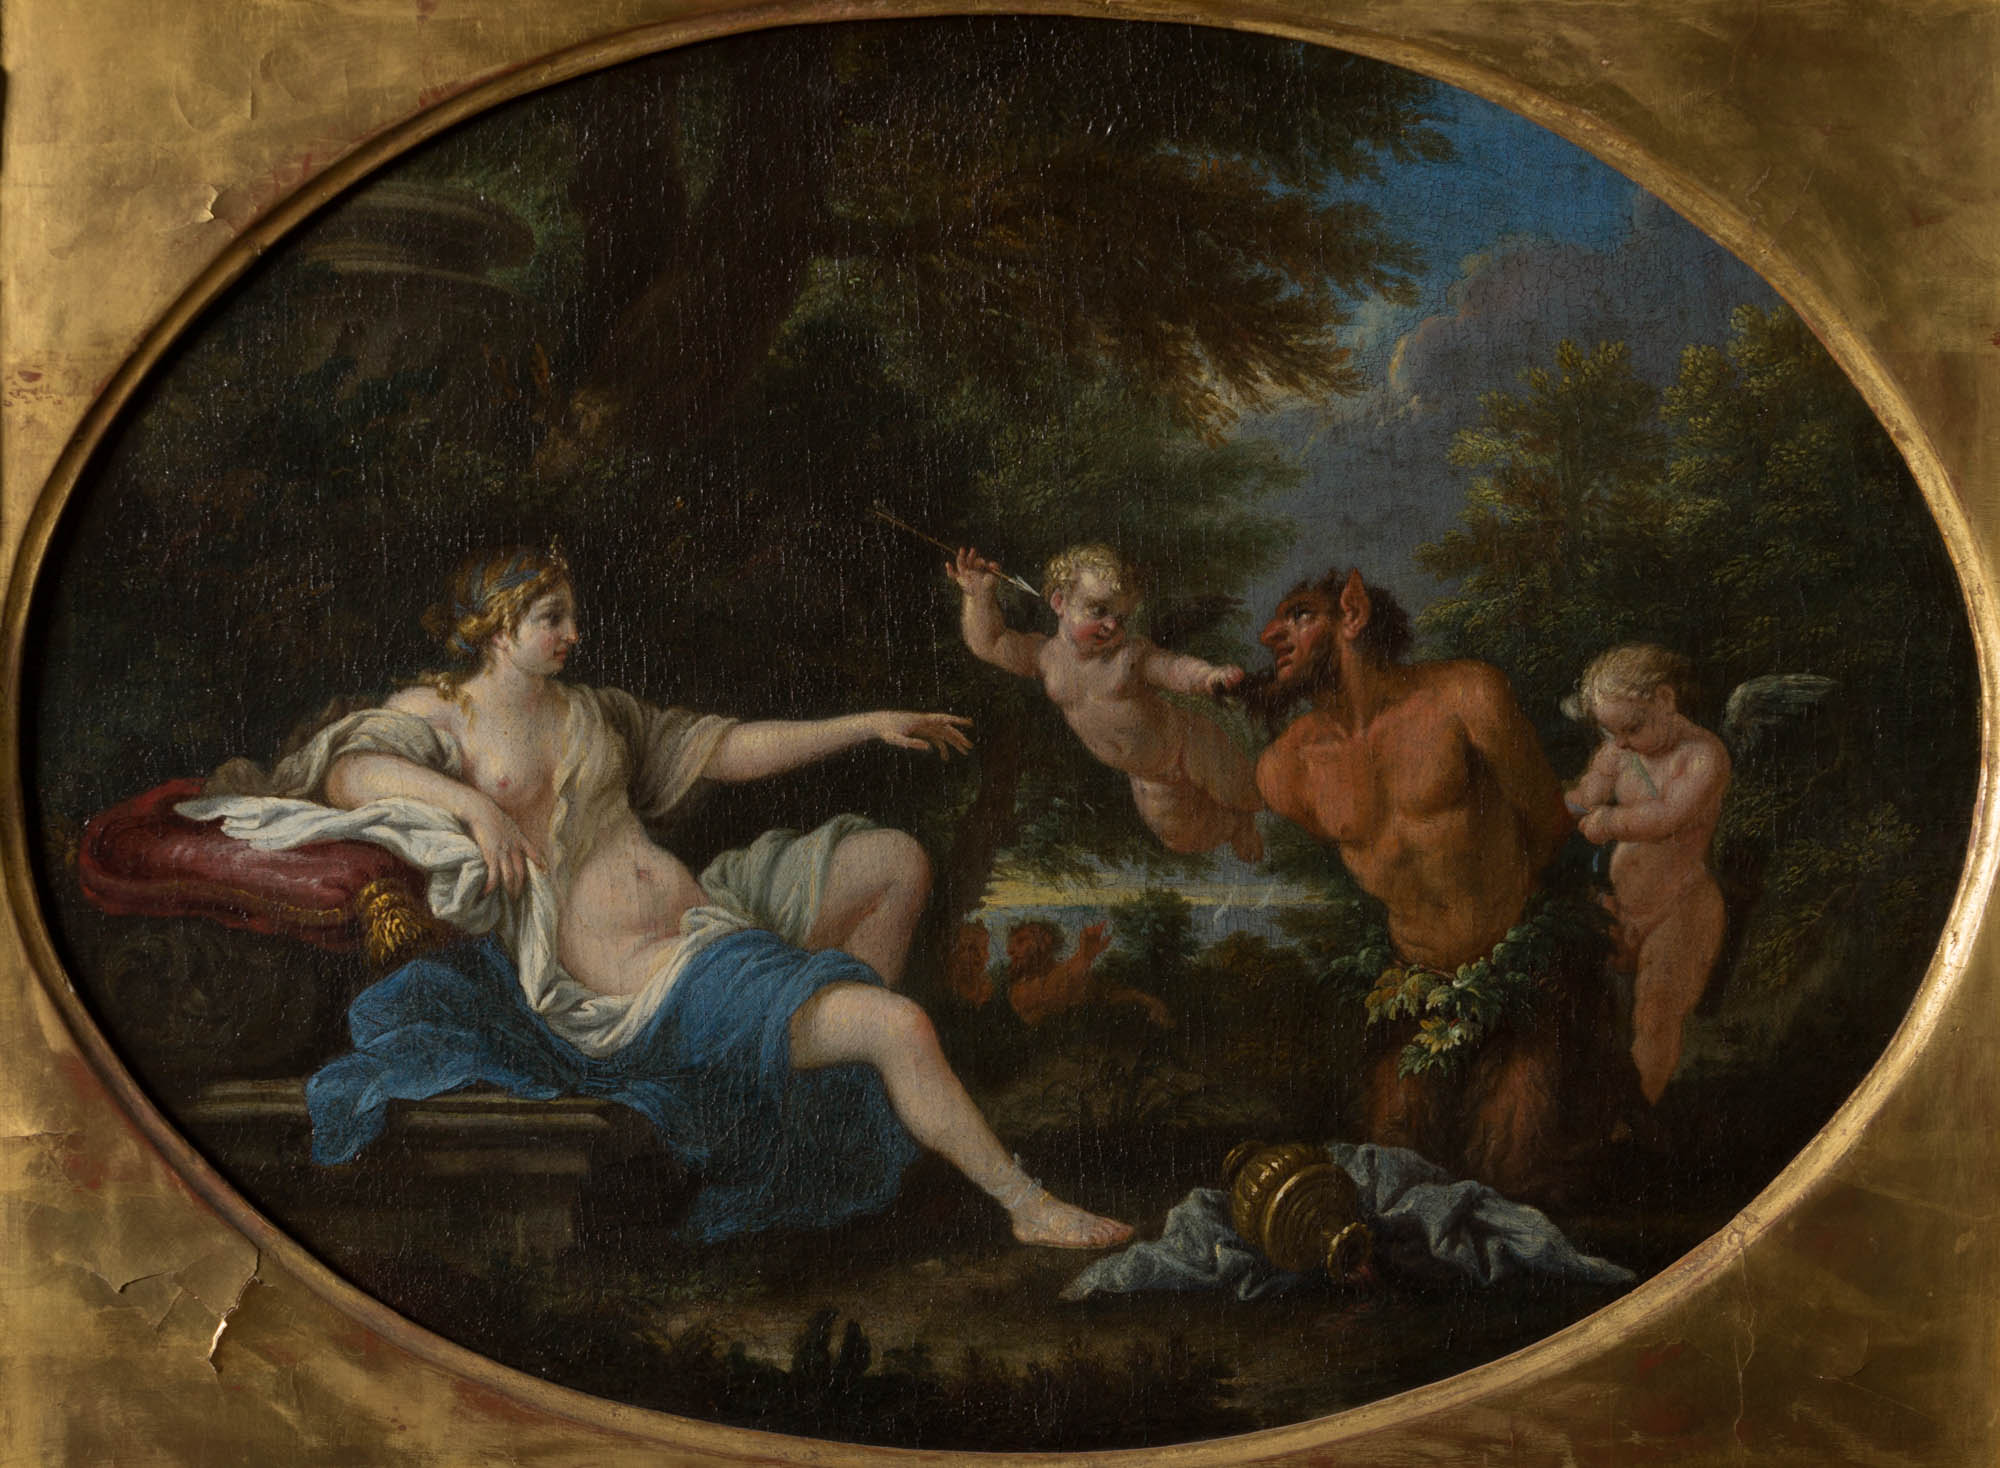 A Satyr Brought Before Venus, by Filippo Lauri (1623-1694).